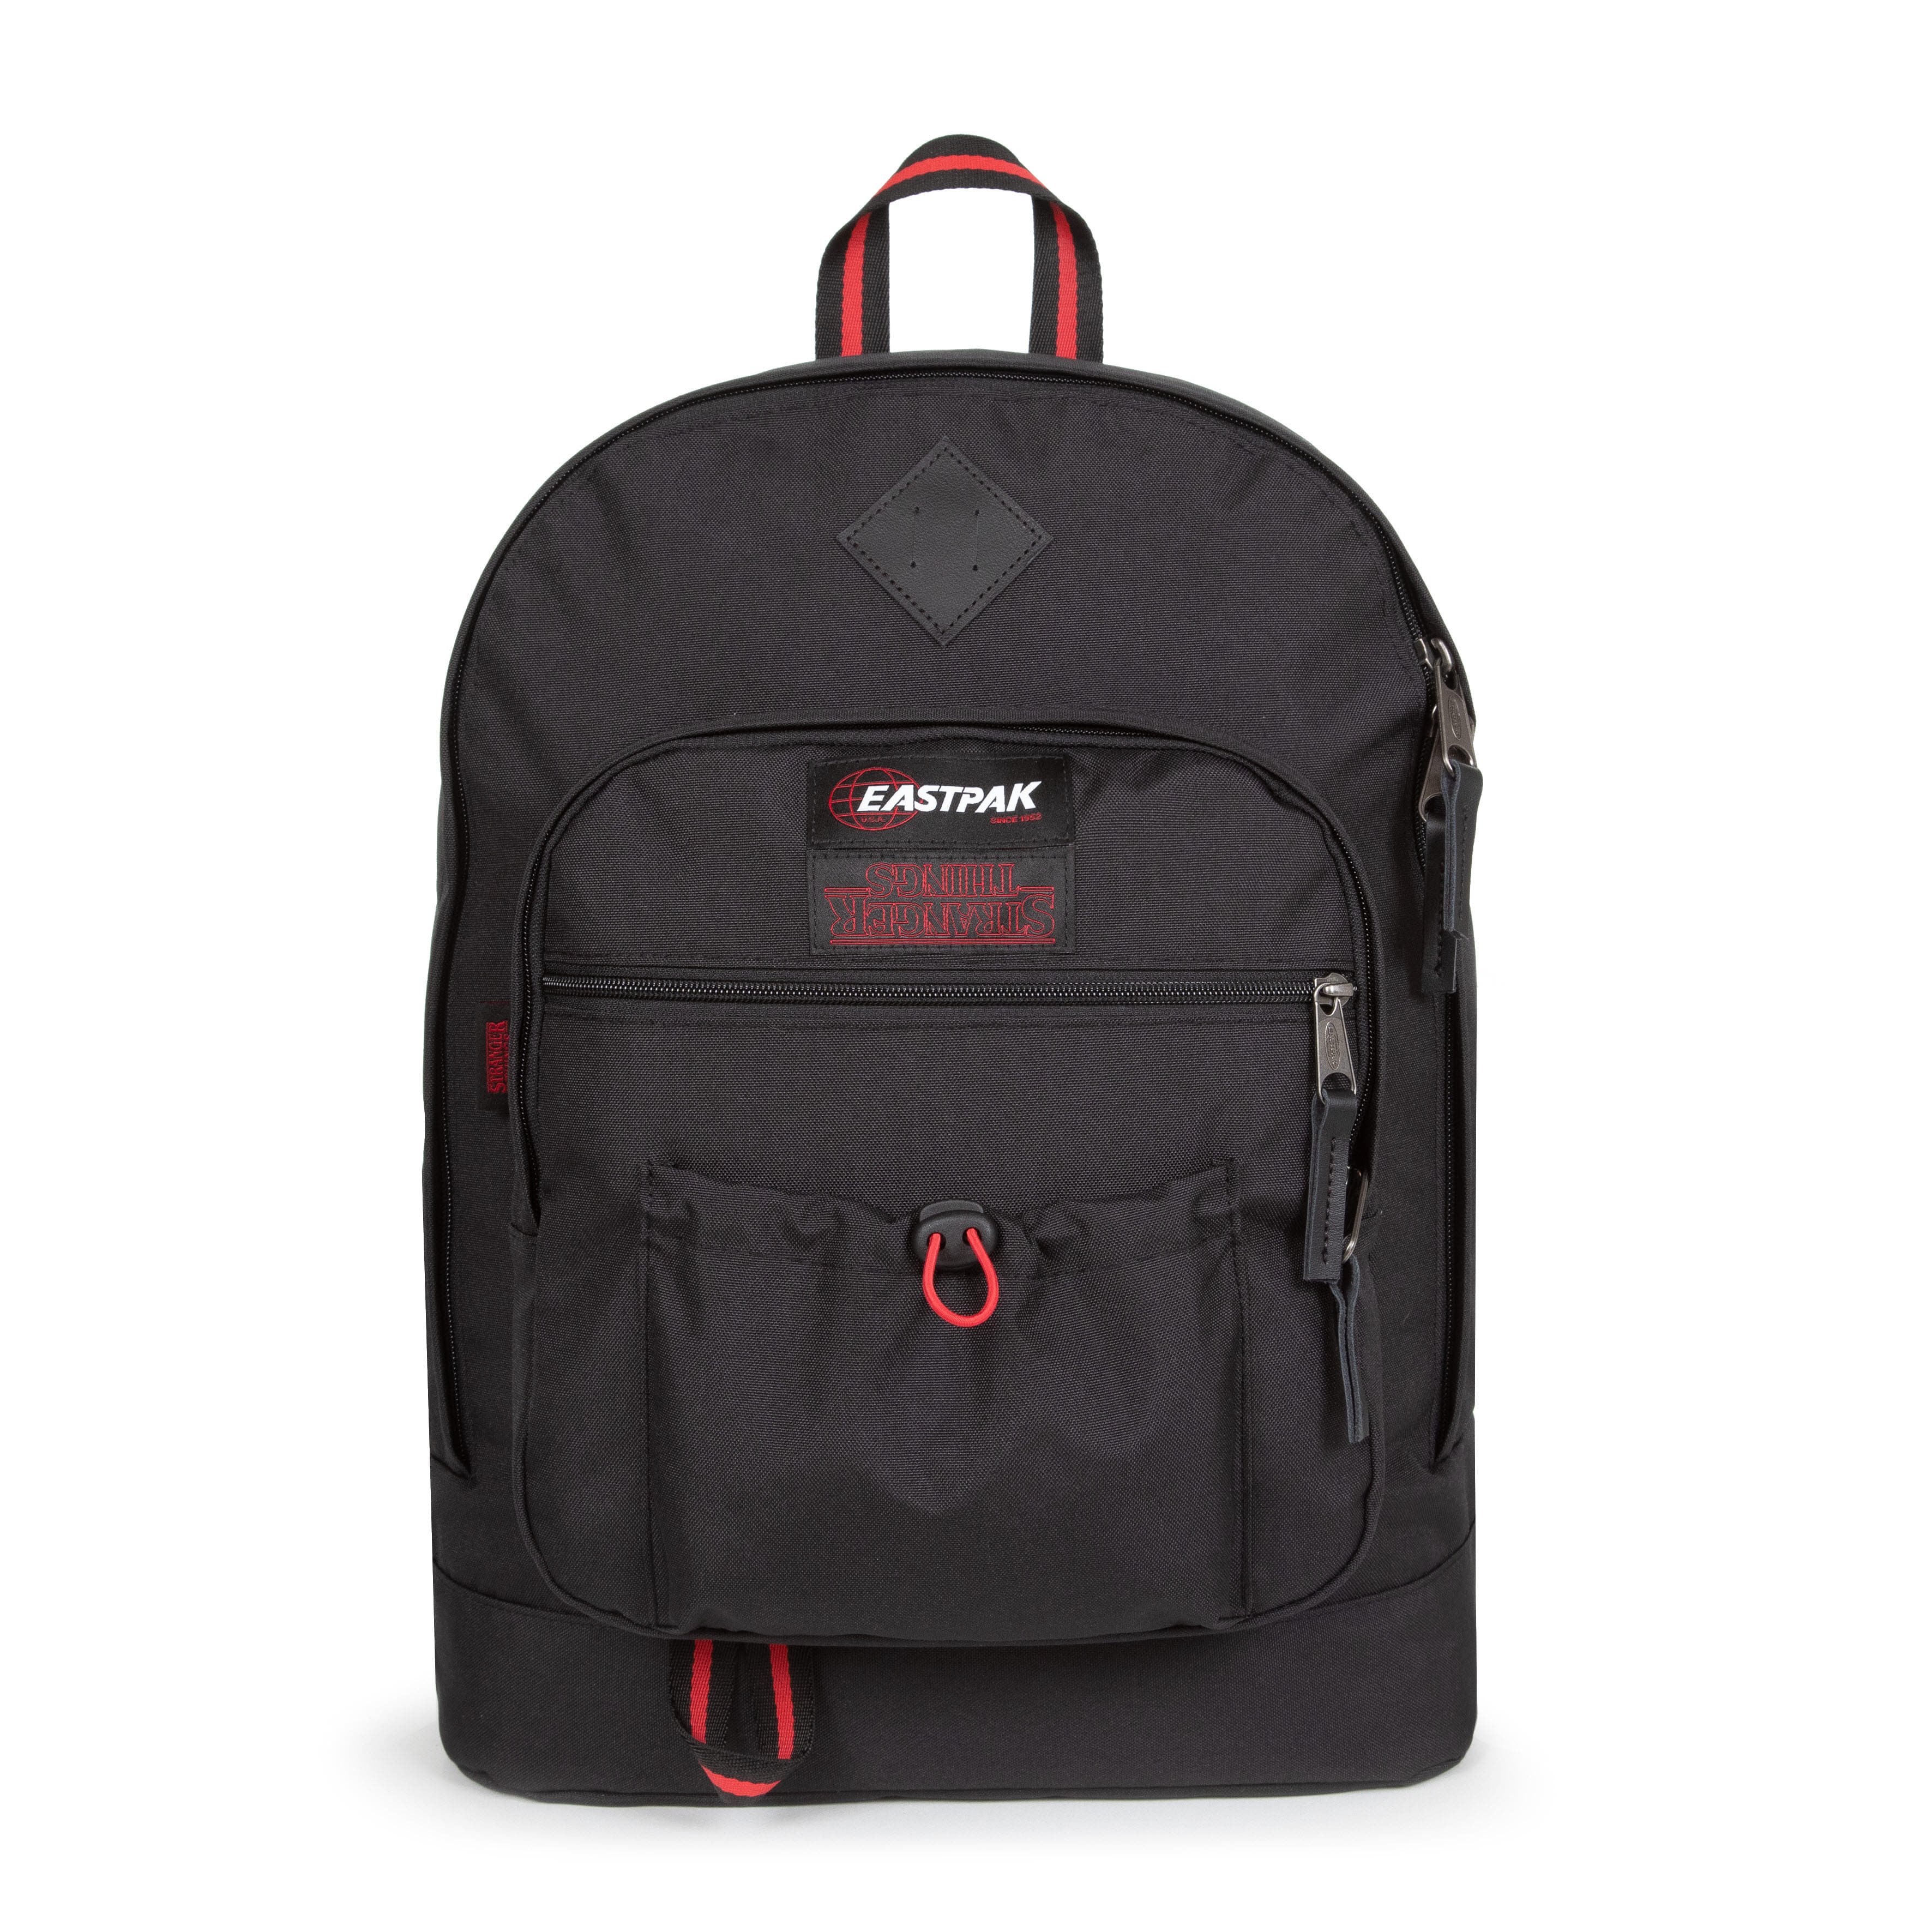 [EASTPAK] STRANGER THINGS 백팩 ST 슈거부시 EKCBA27 K07